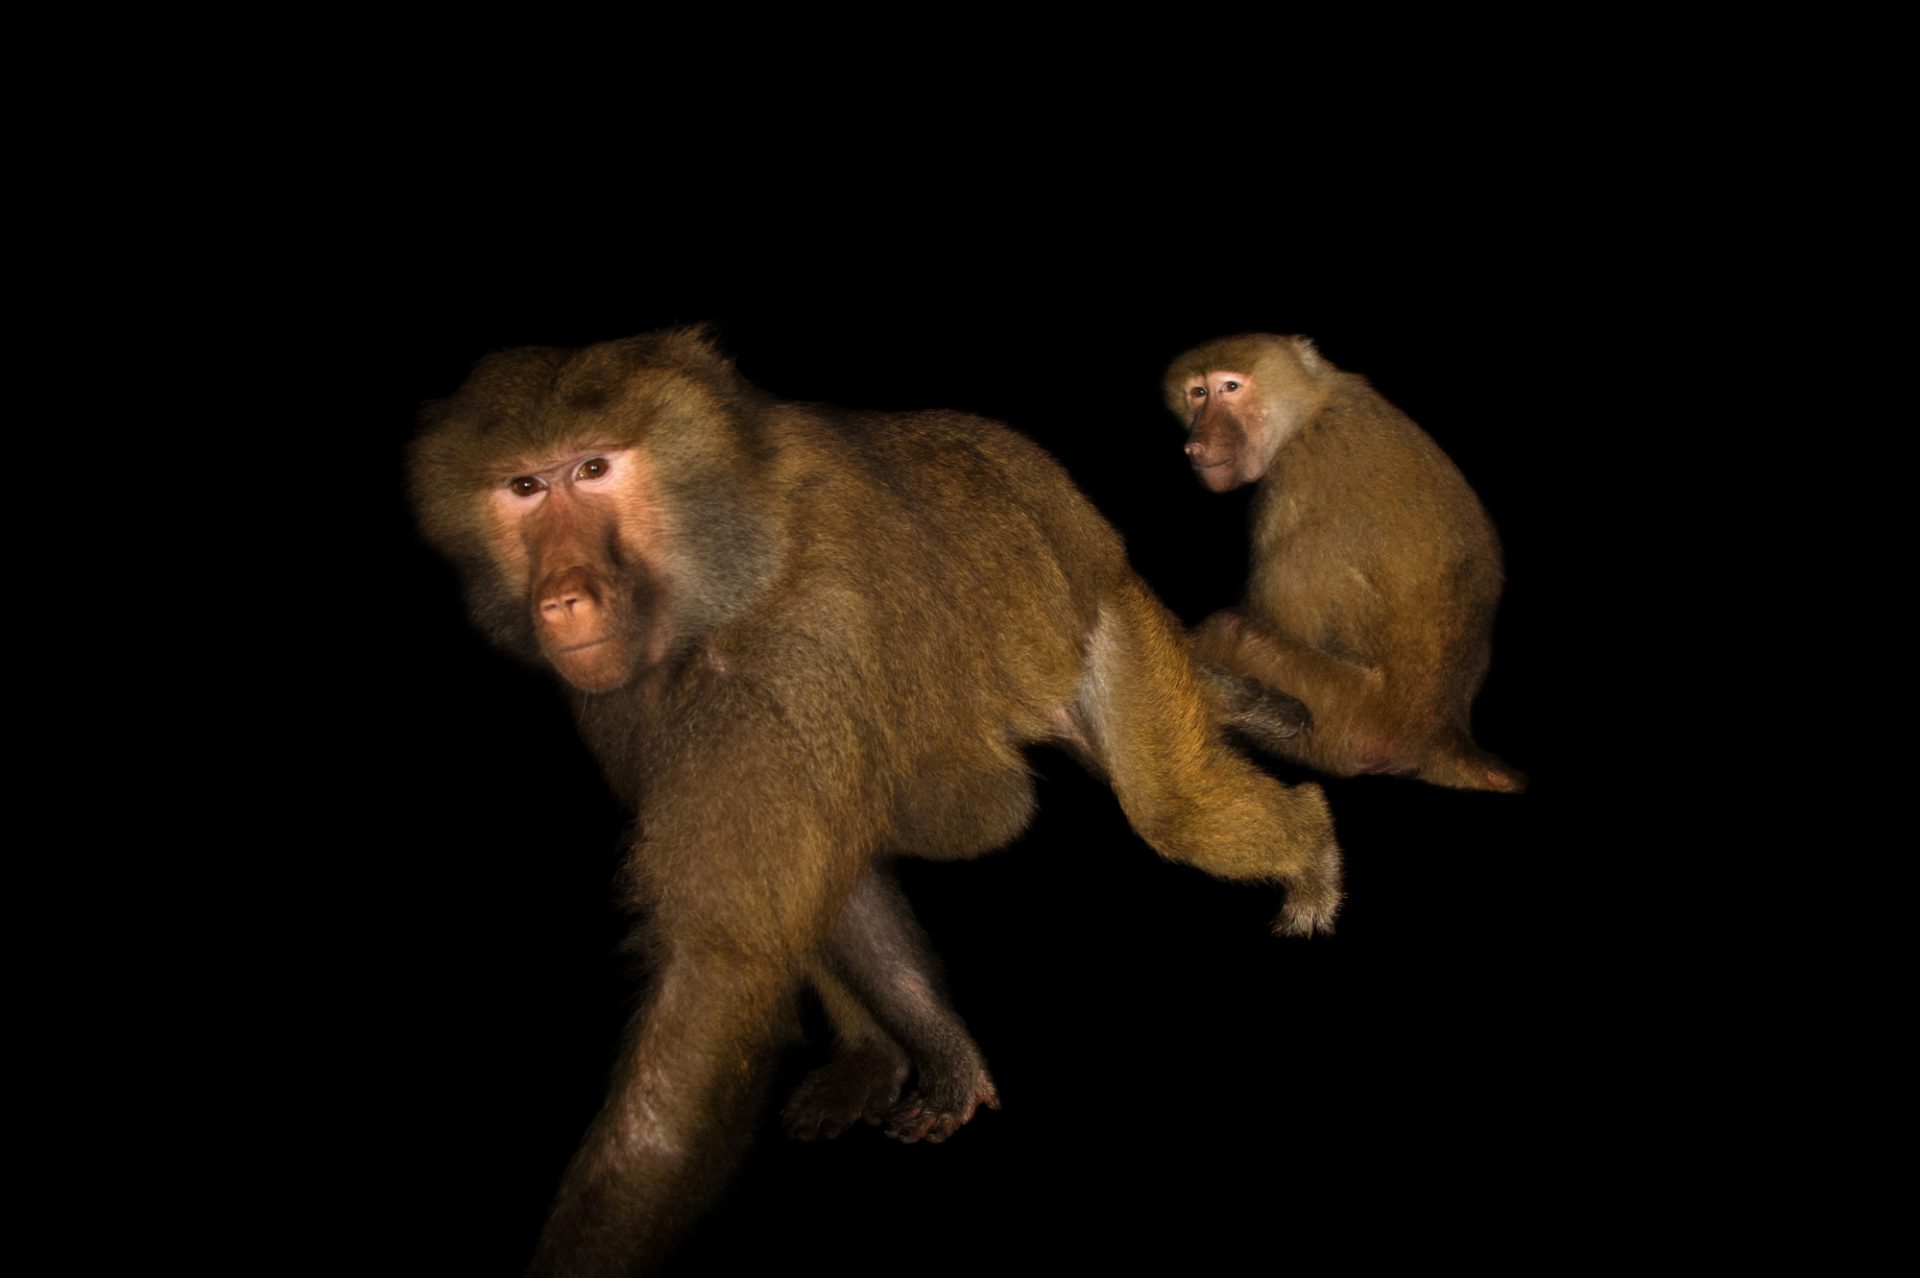 Picture of two female Hamadryas baboons (Papio hamadryas) at the Alabama Gulf Coast Zoo.